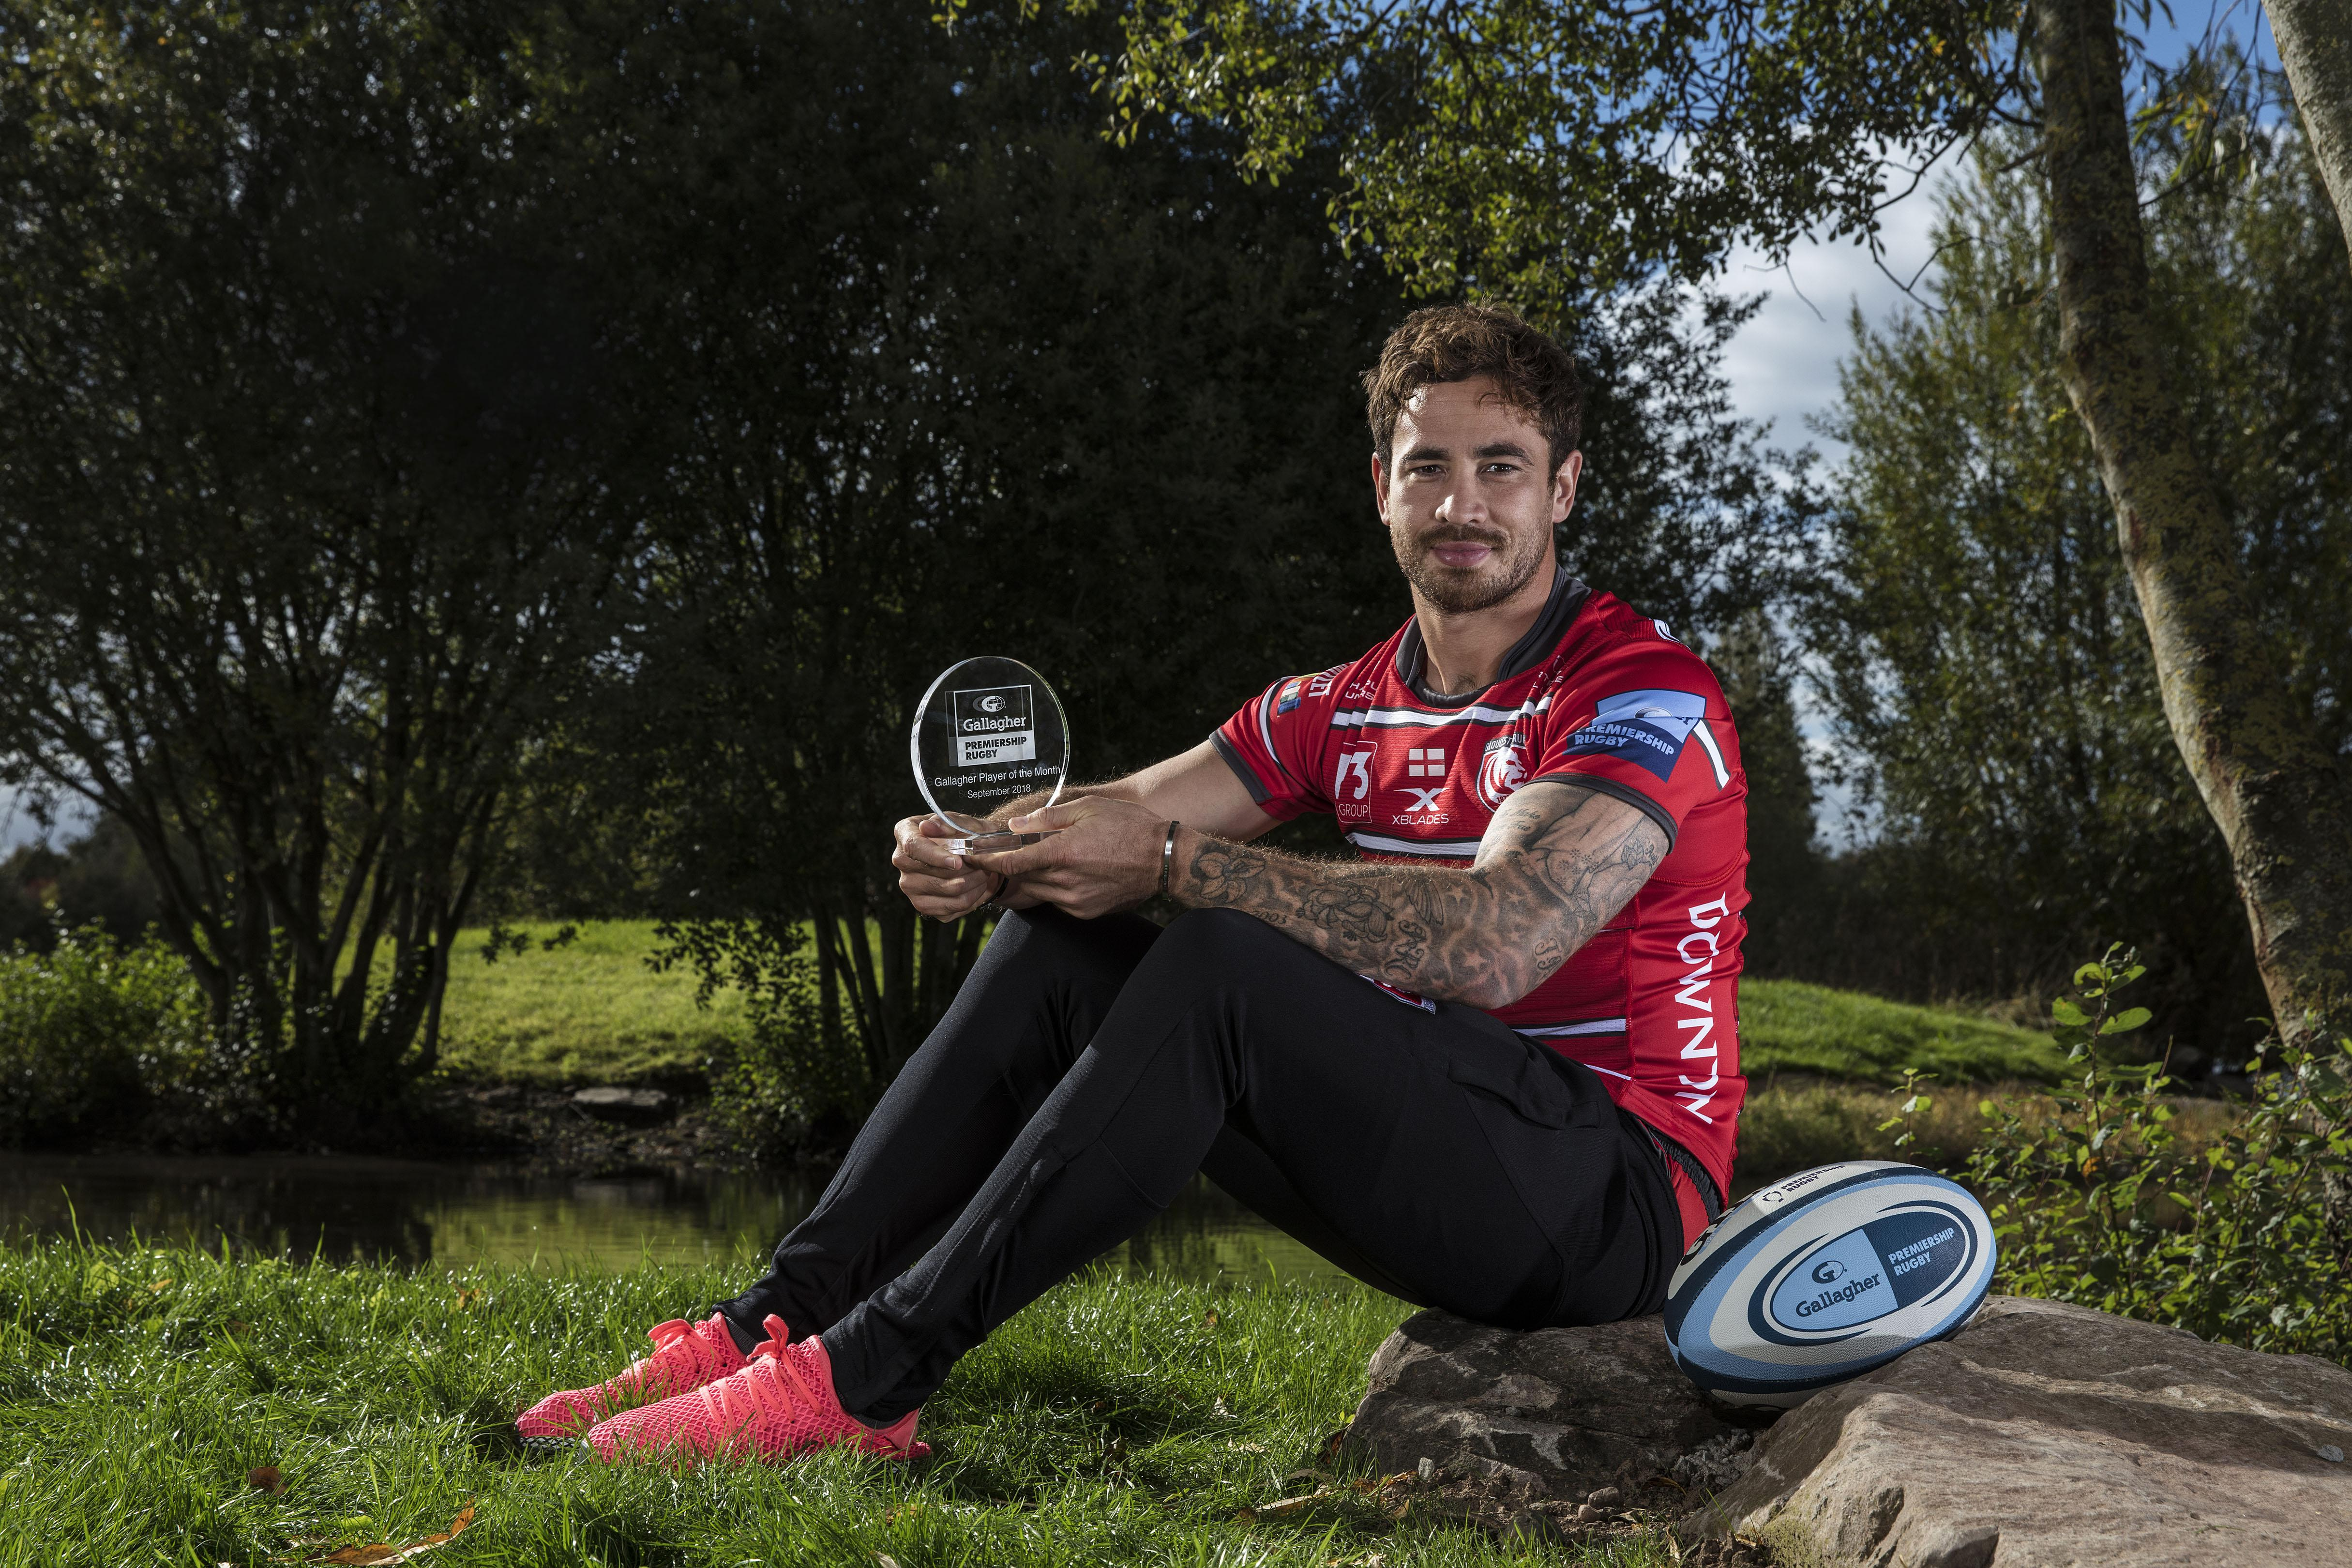 Danny Cipriani was named the Gallagher Premiership player of the month after a superb start to life at Gloucester